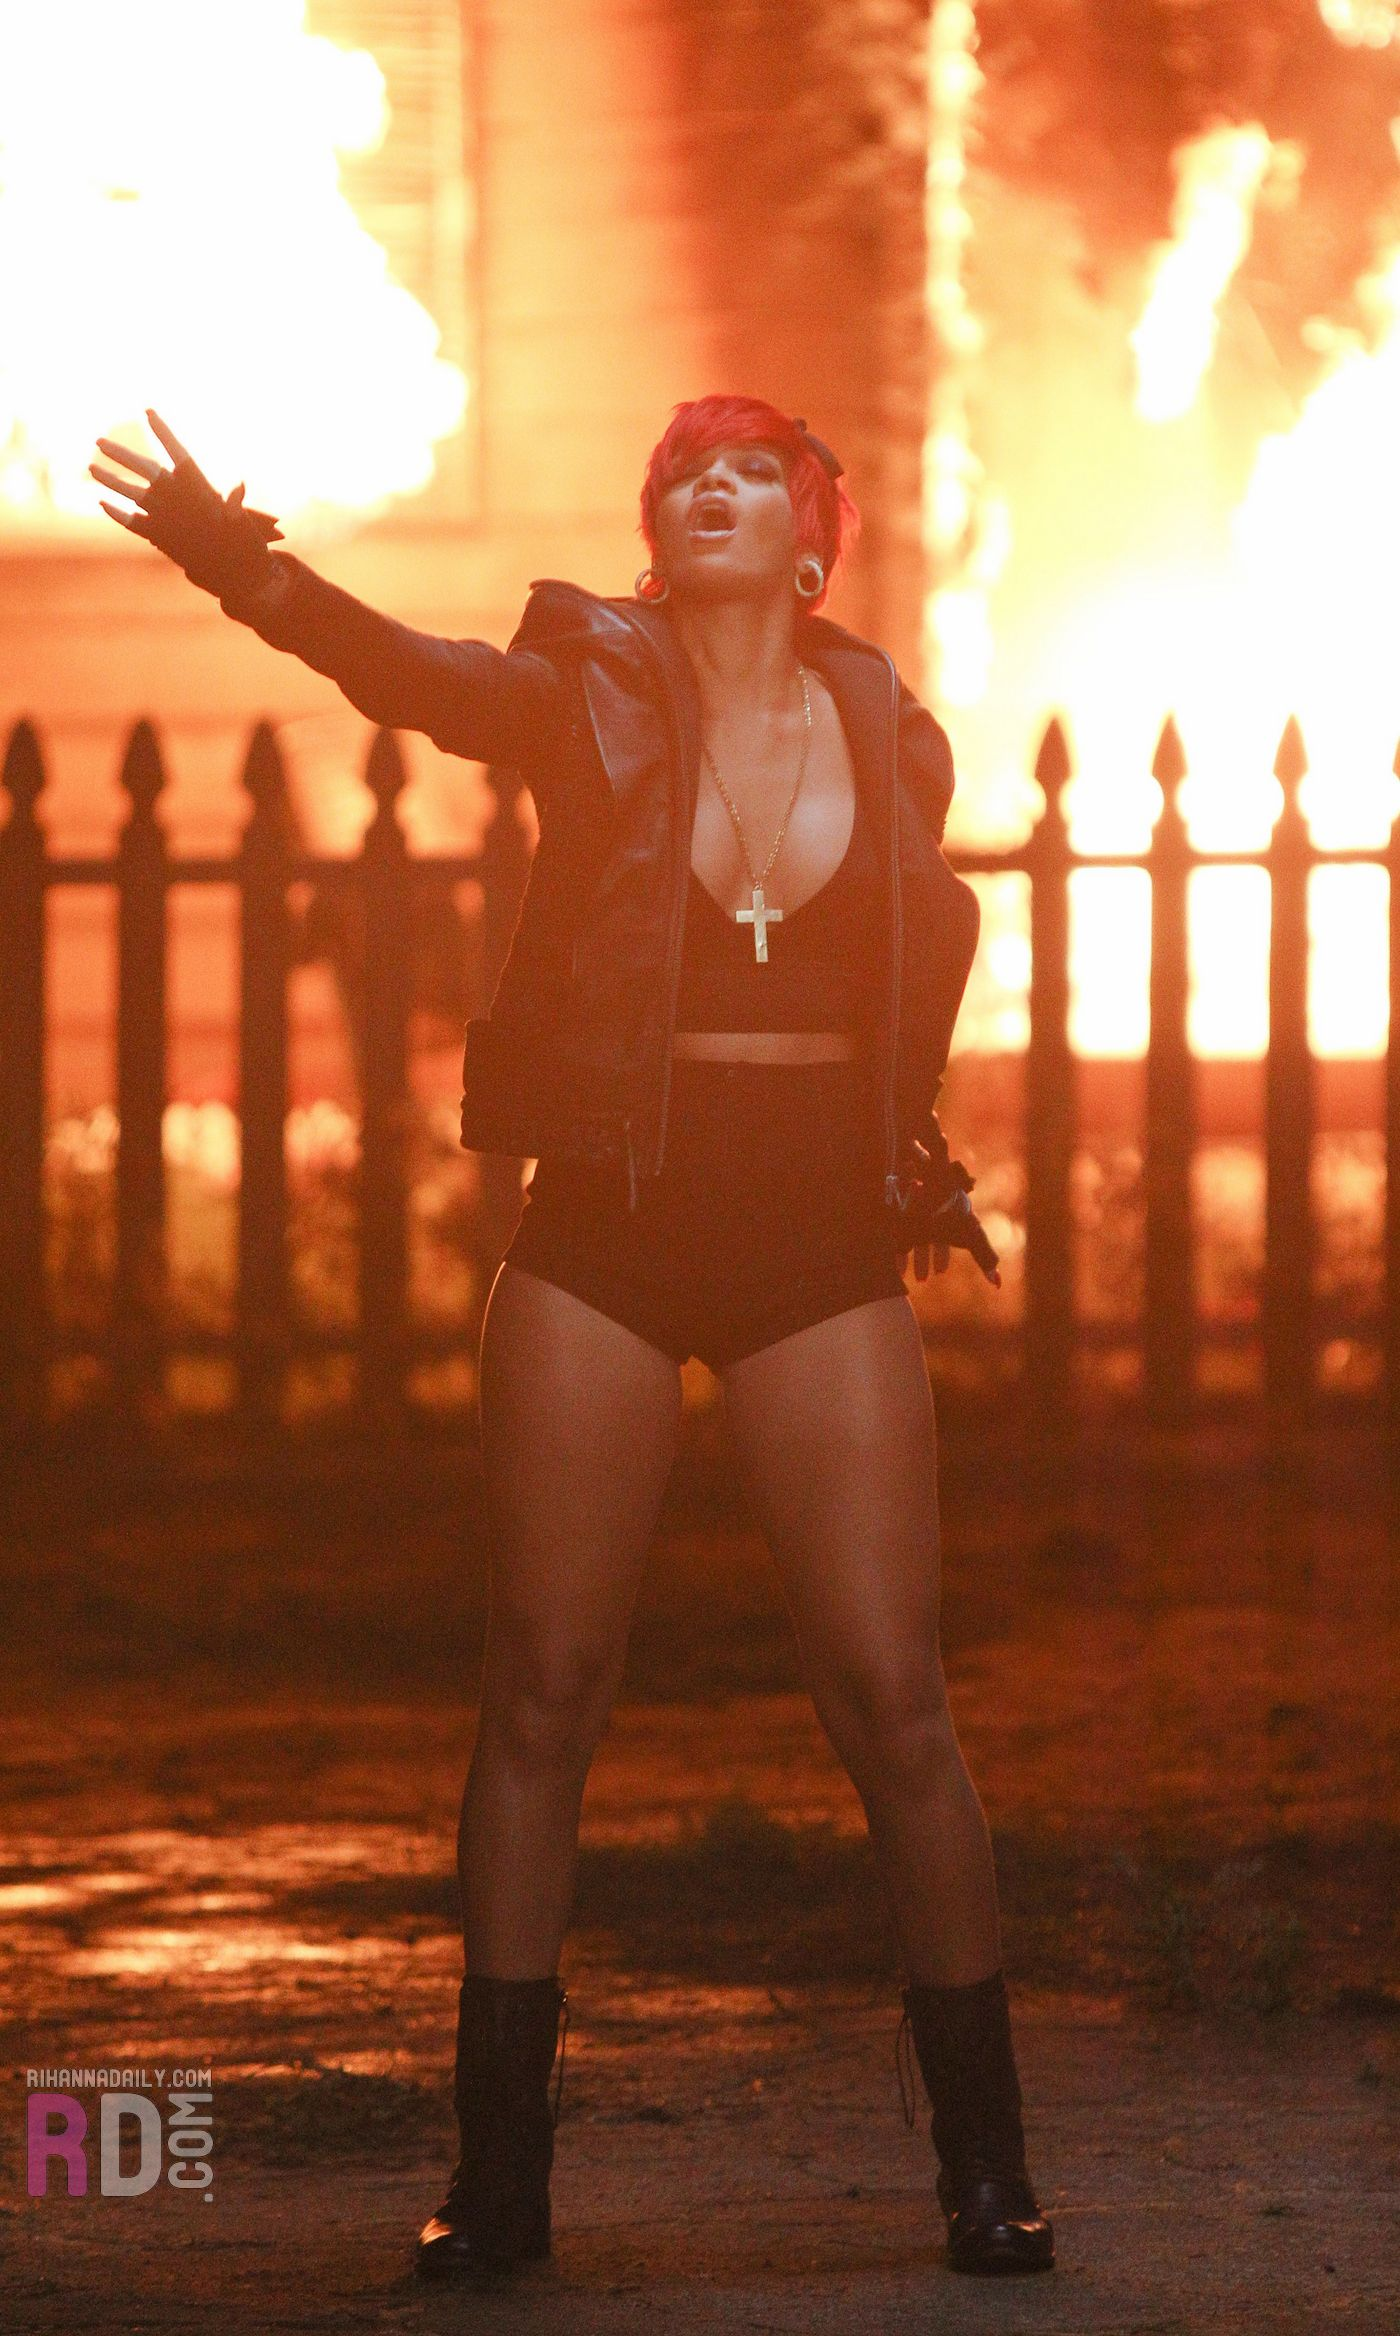 ririri Hot Shots: More Pics Of Rihanna On Set Of Love The Way You Lie